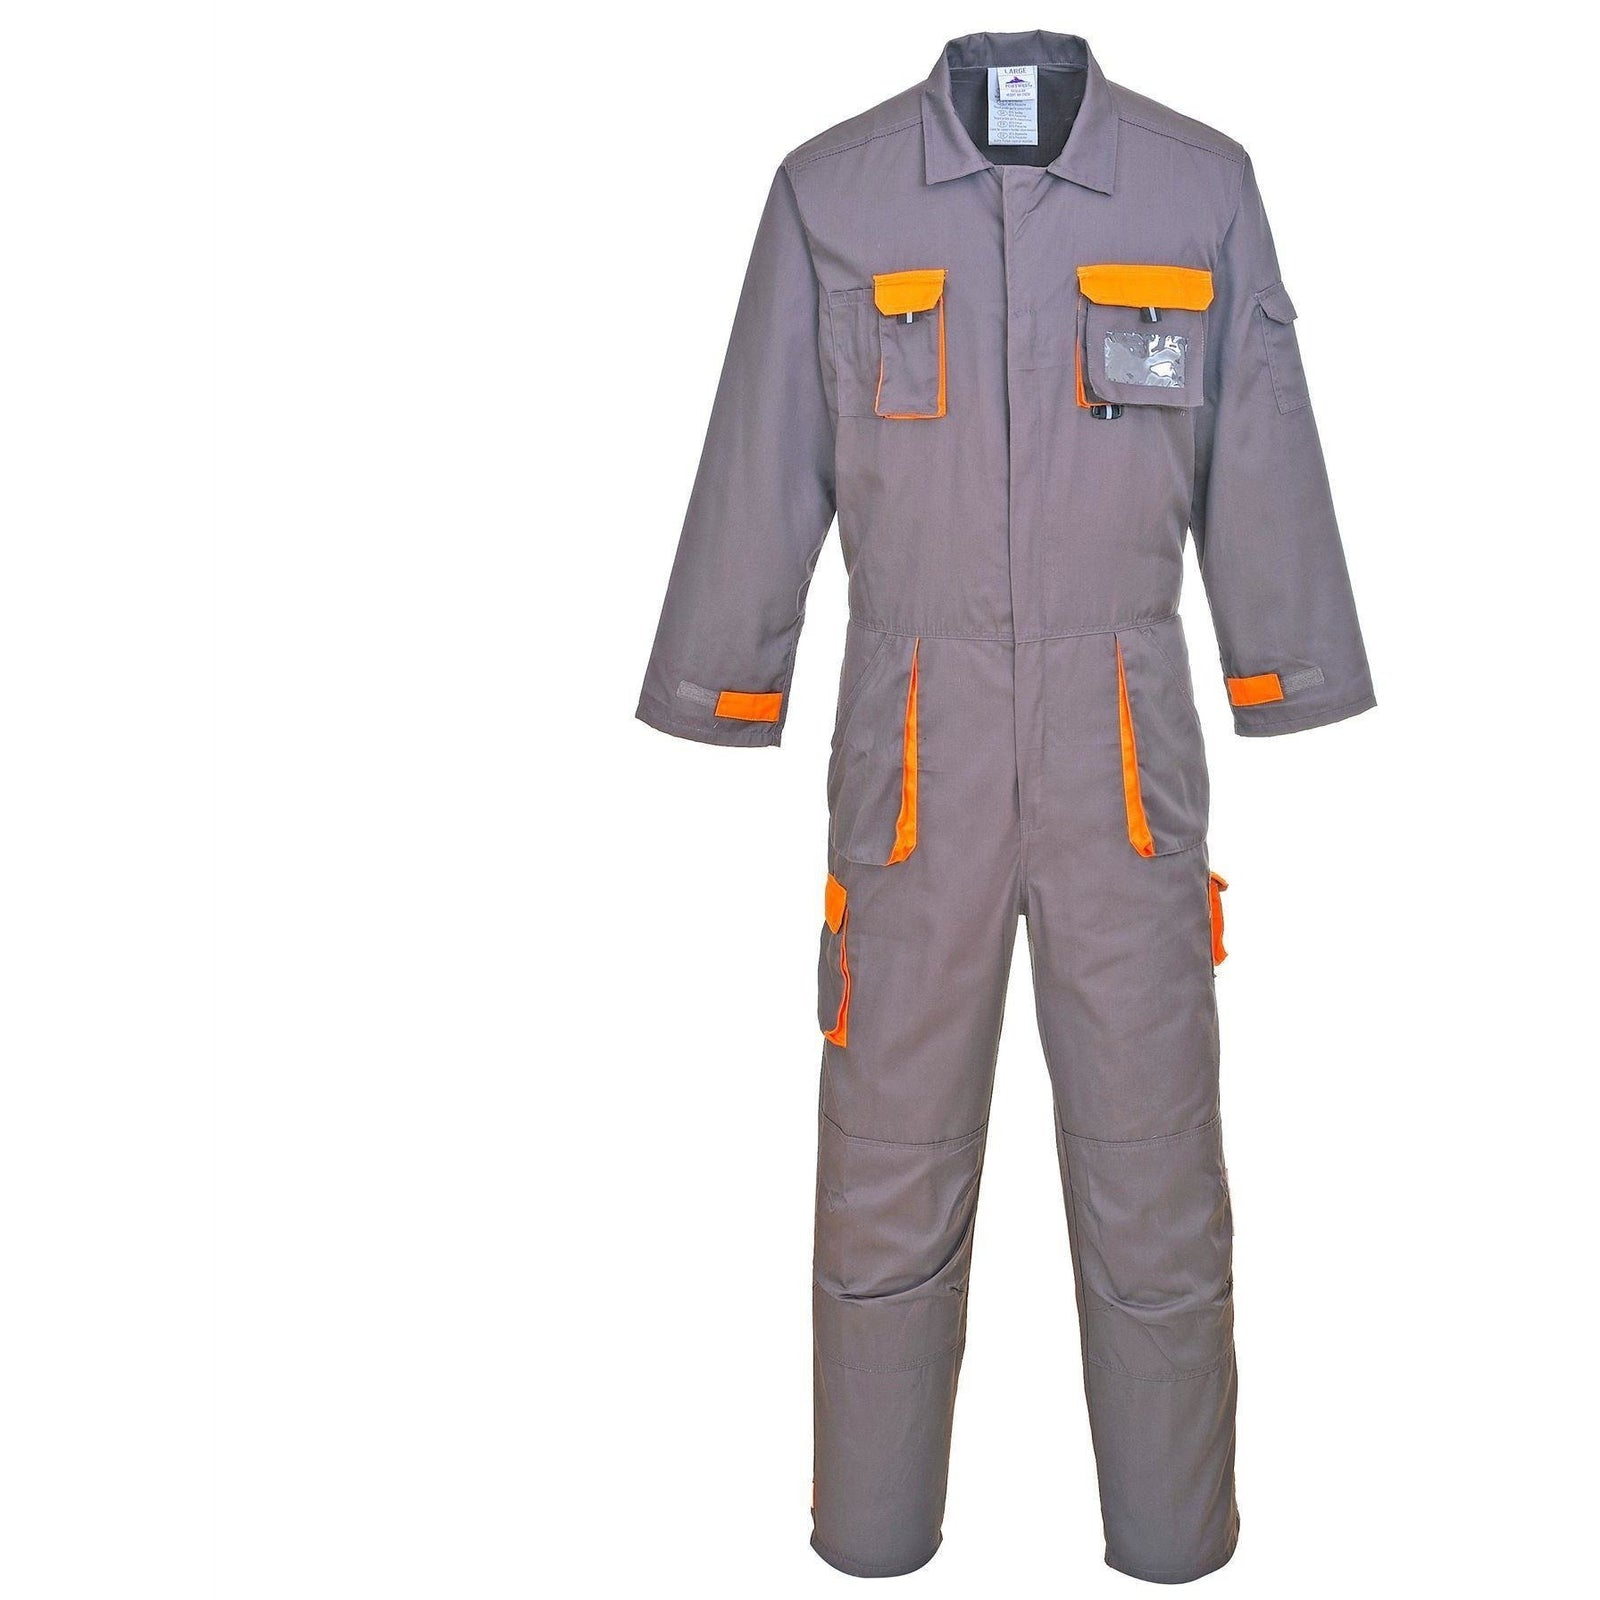 Portwest Portwest Texo Contrast Coverall TX15 - reid outdoors